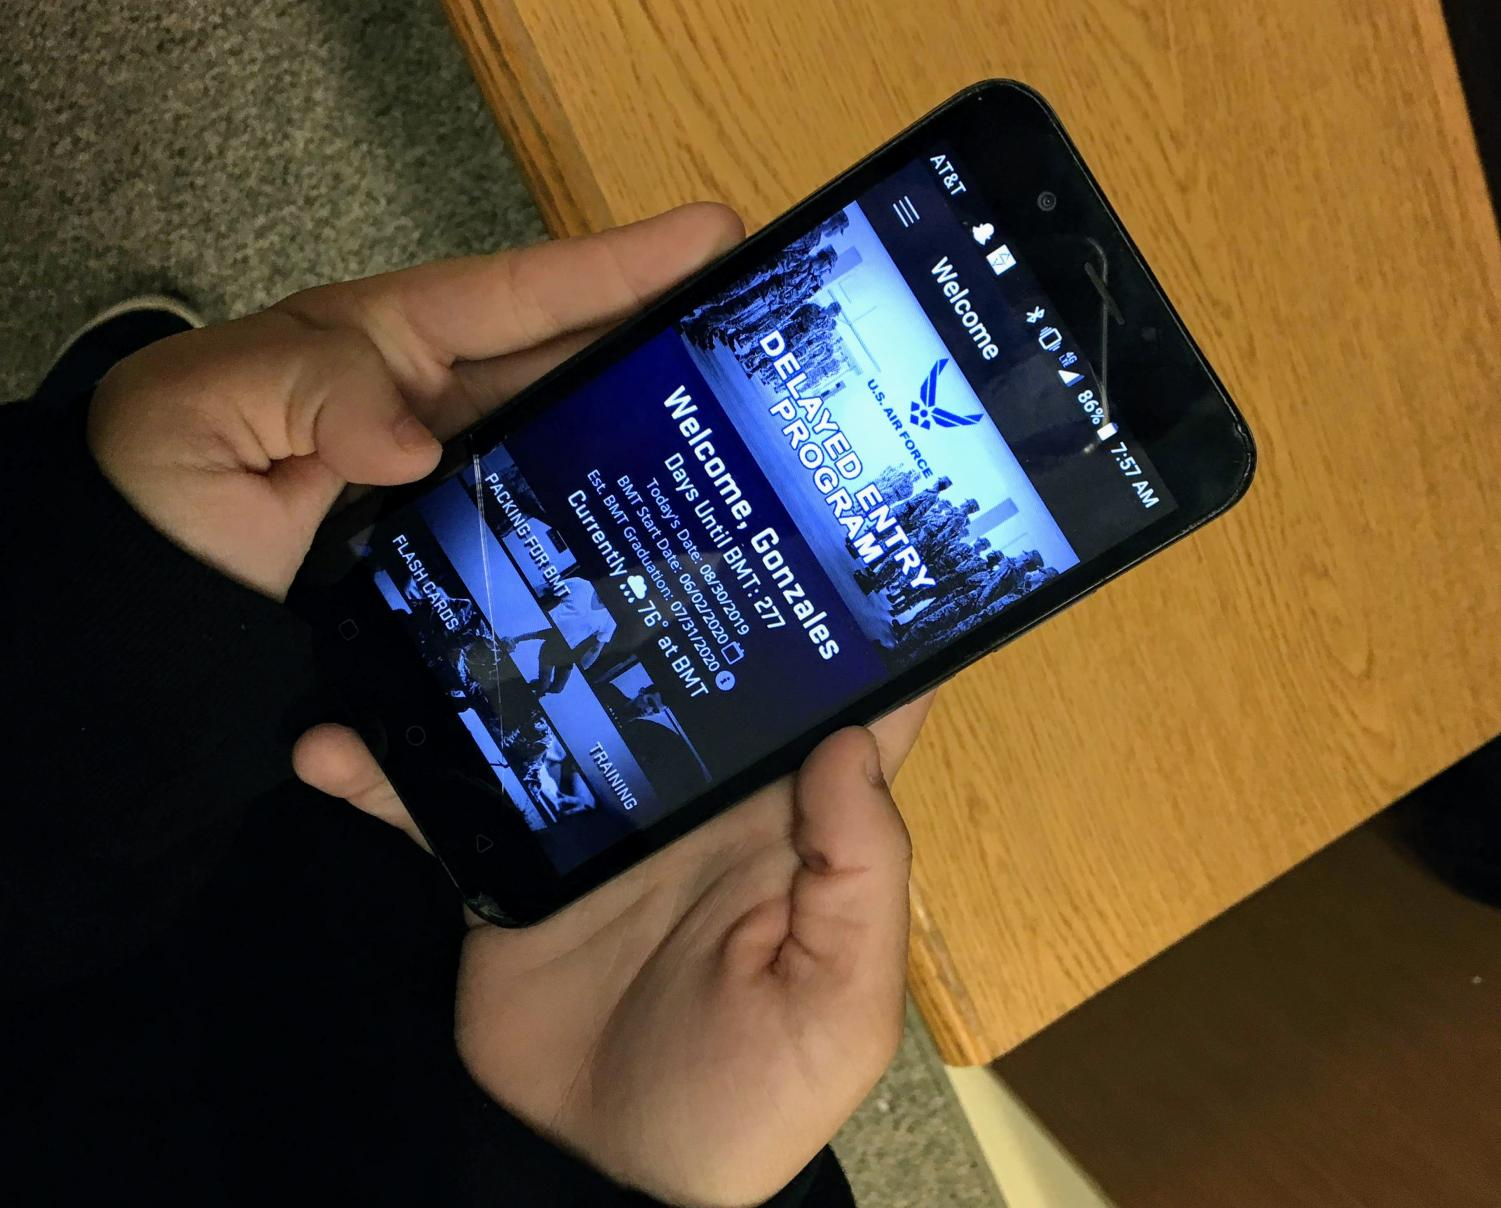 Senior Mackenzie Gonzales uses the DEP app. This app helps her study for tests and prepare for certain events.